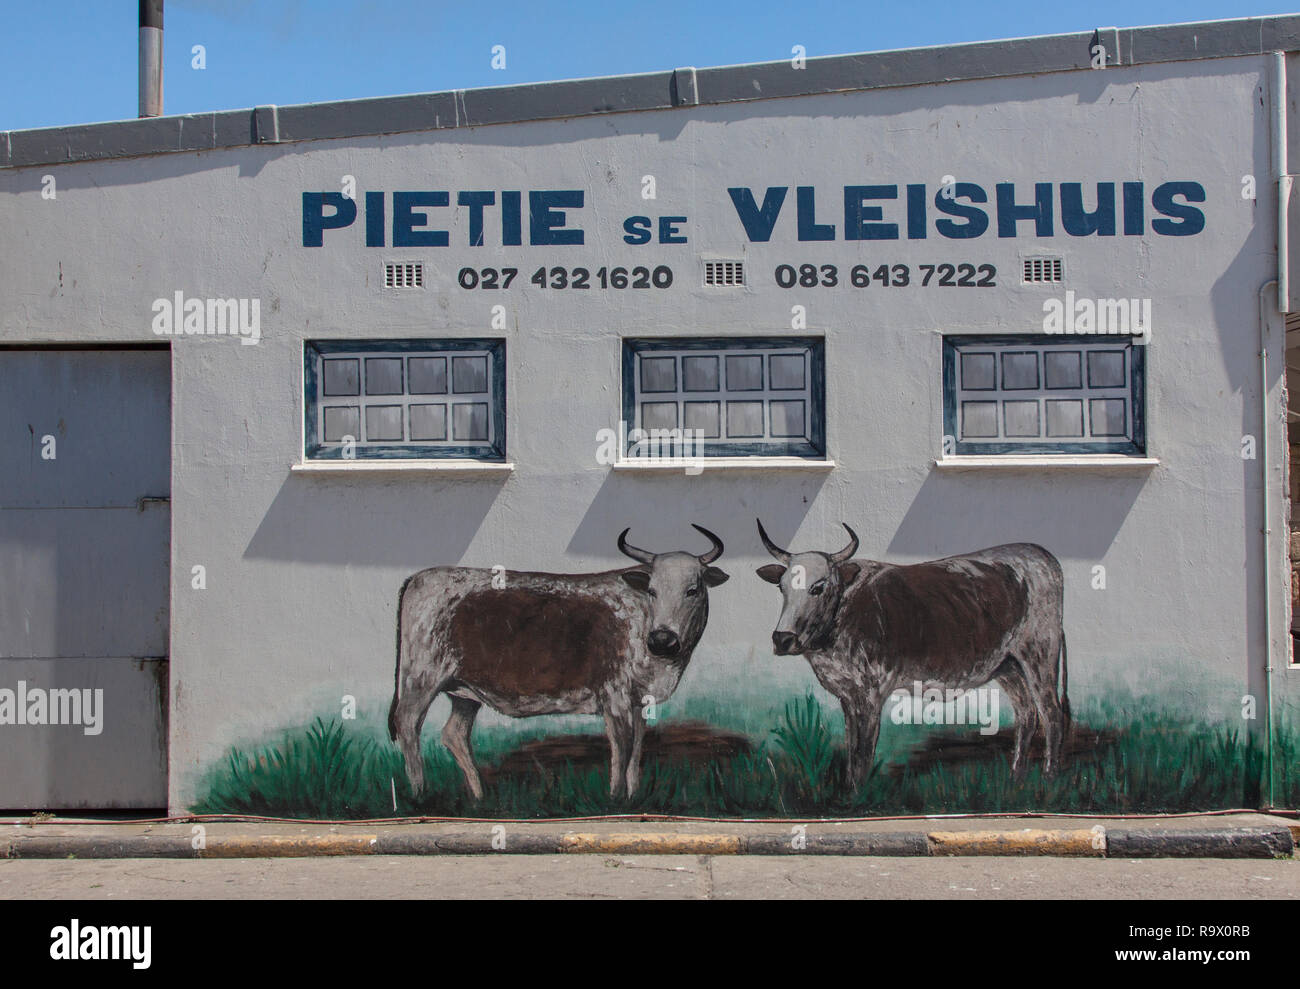 Mural at a facade of a butcher's shop in Lambert's Bay, South Africa - Stock Image